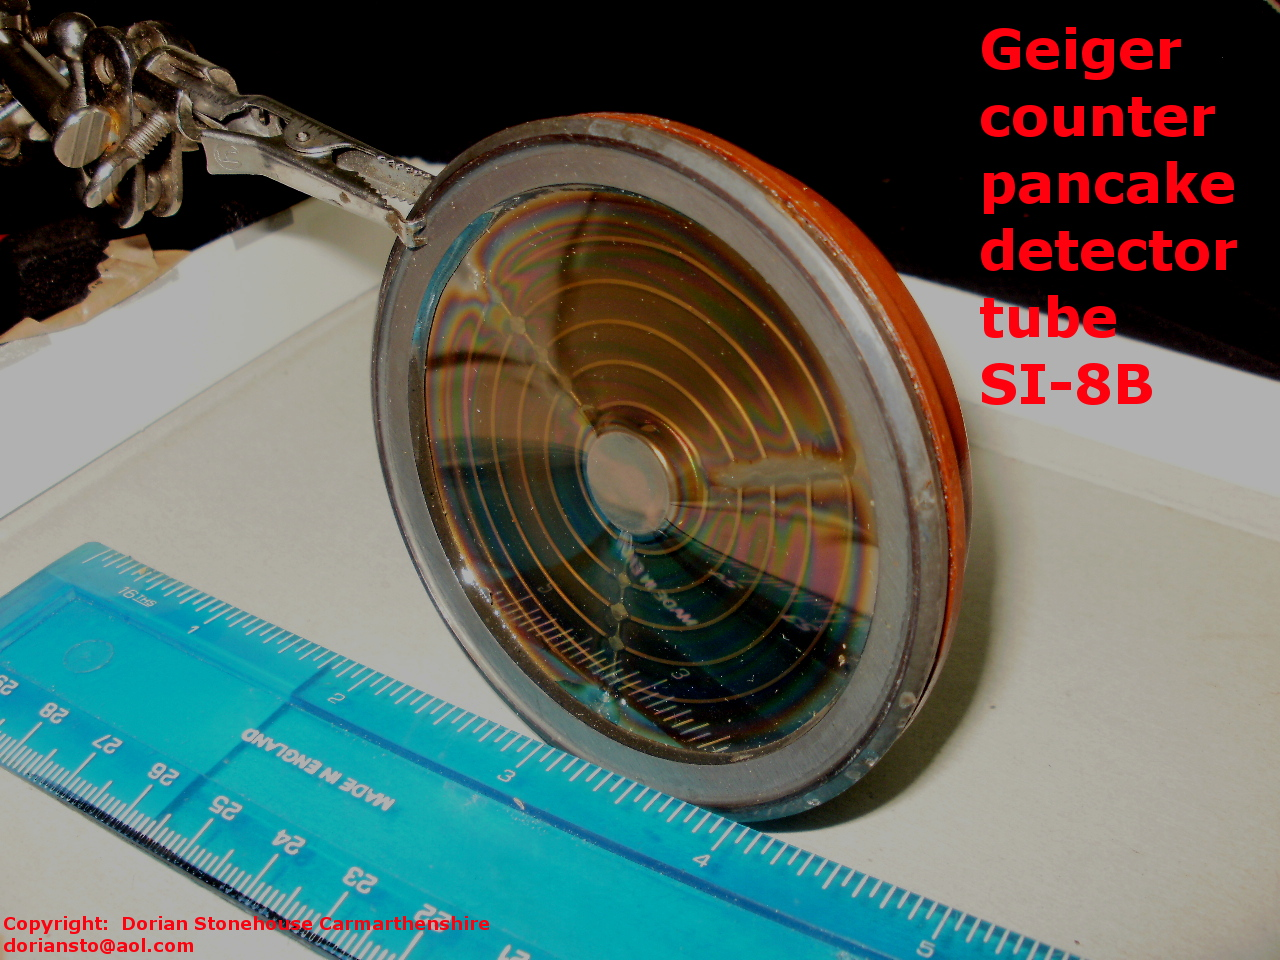 The newer type Geiger detector tube